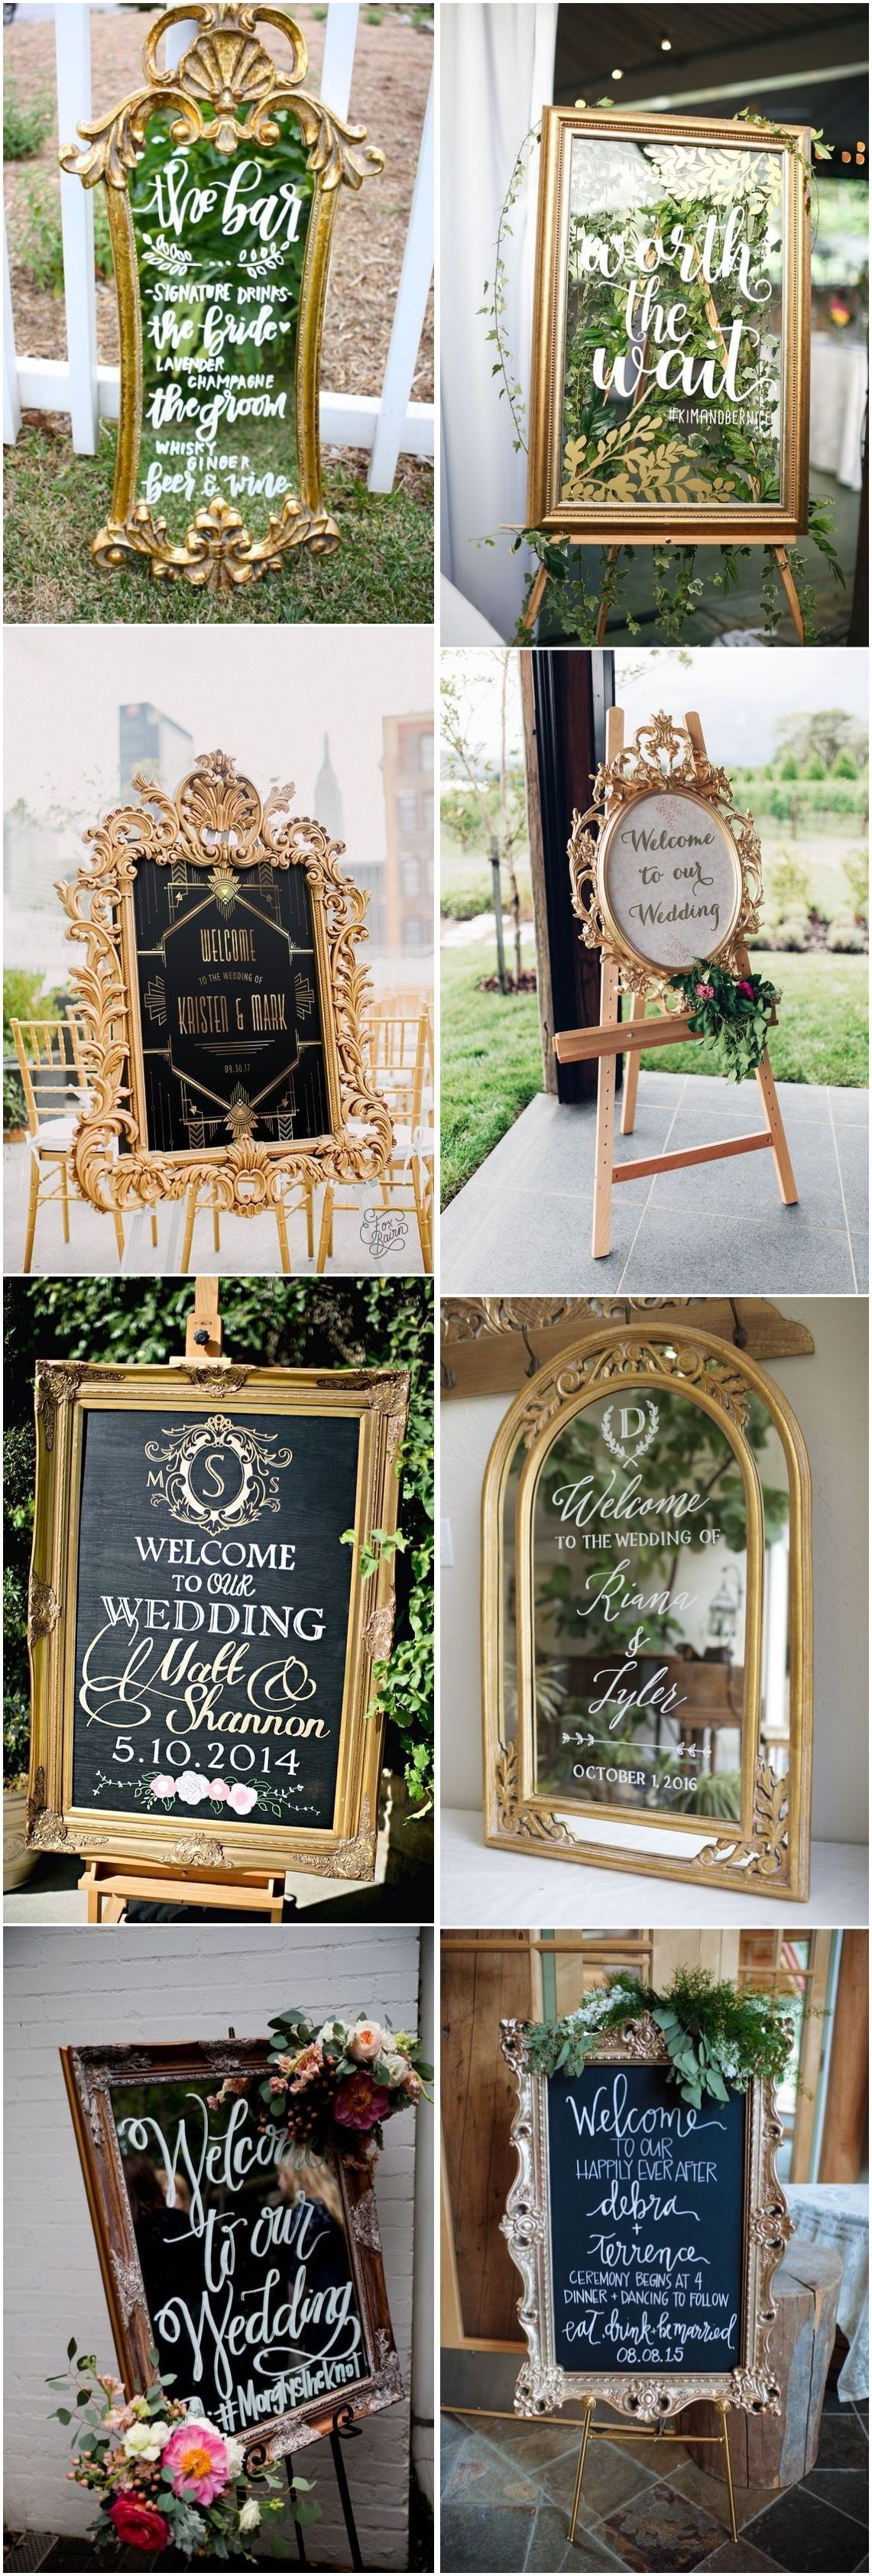 Vintage Welcome Wedding Sign Ideas in   Mrs Williams